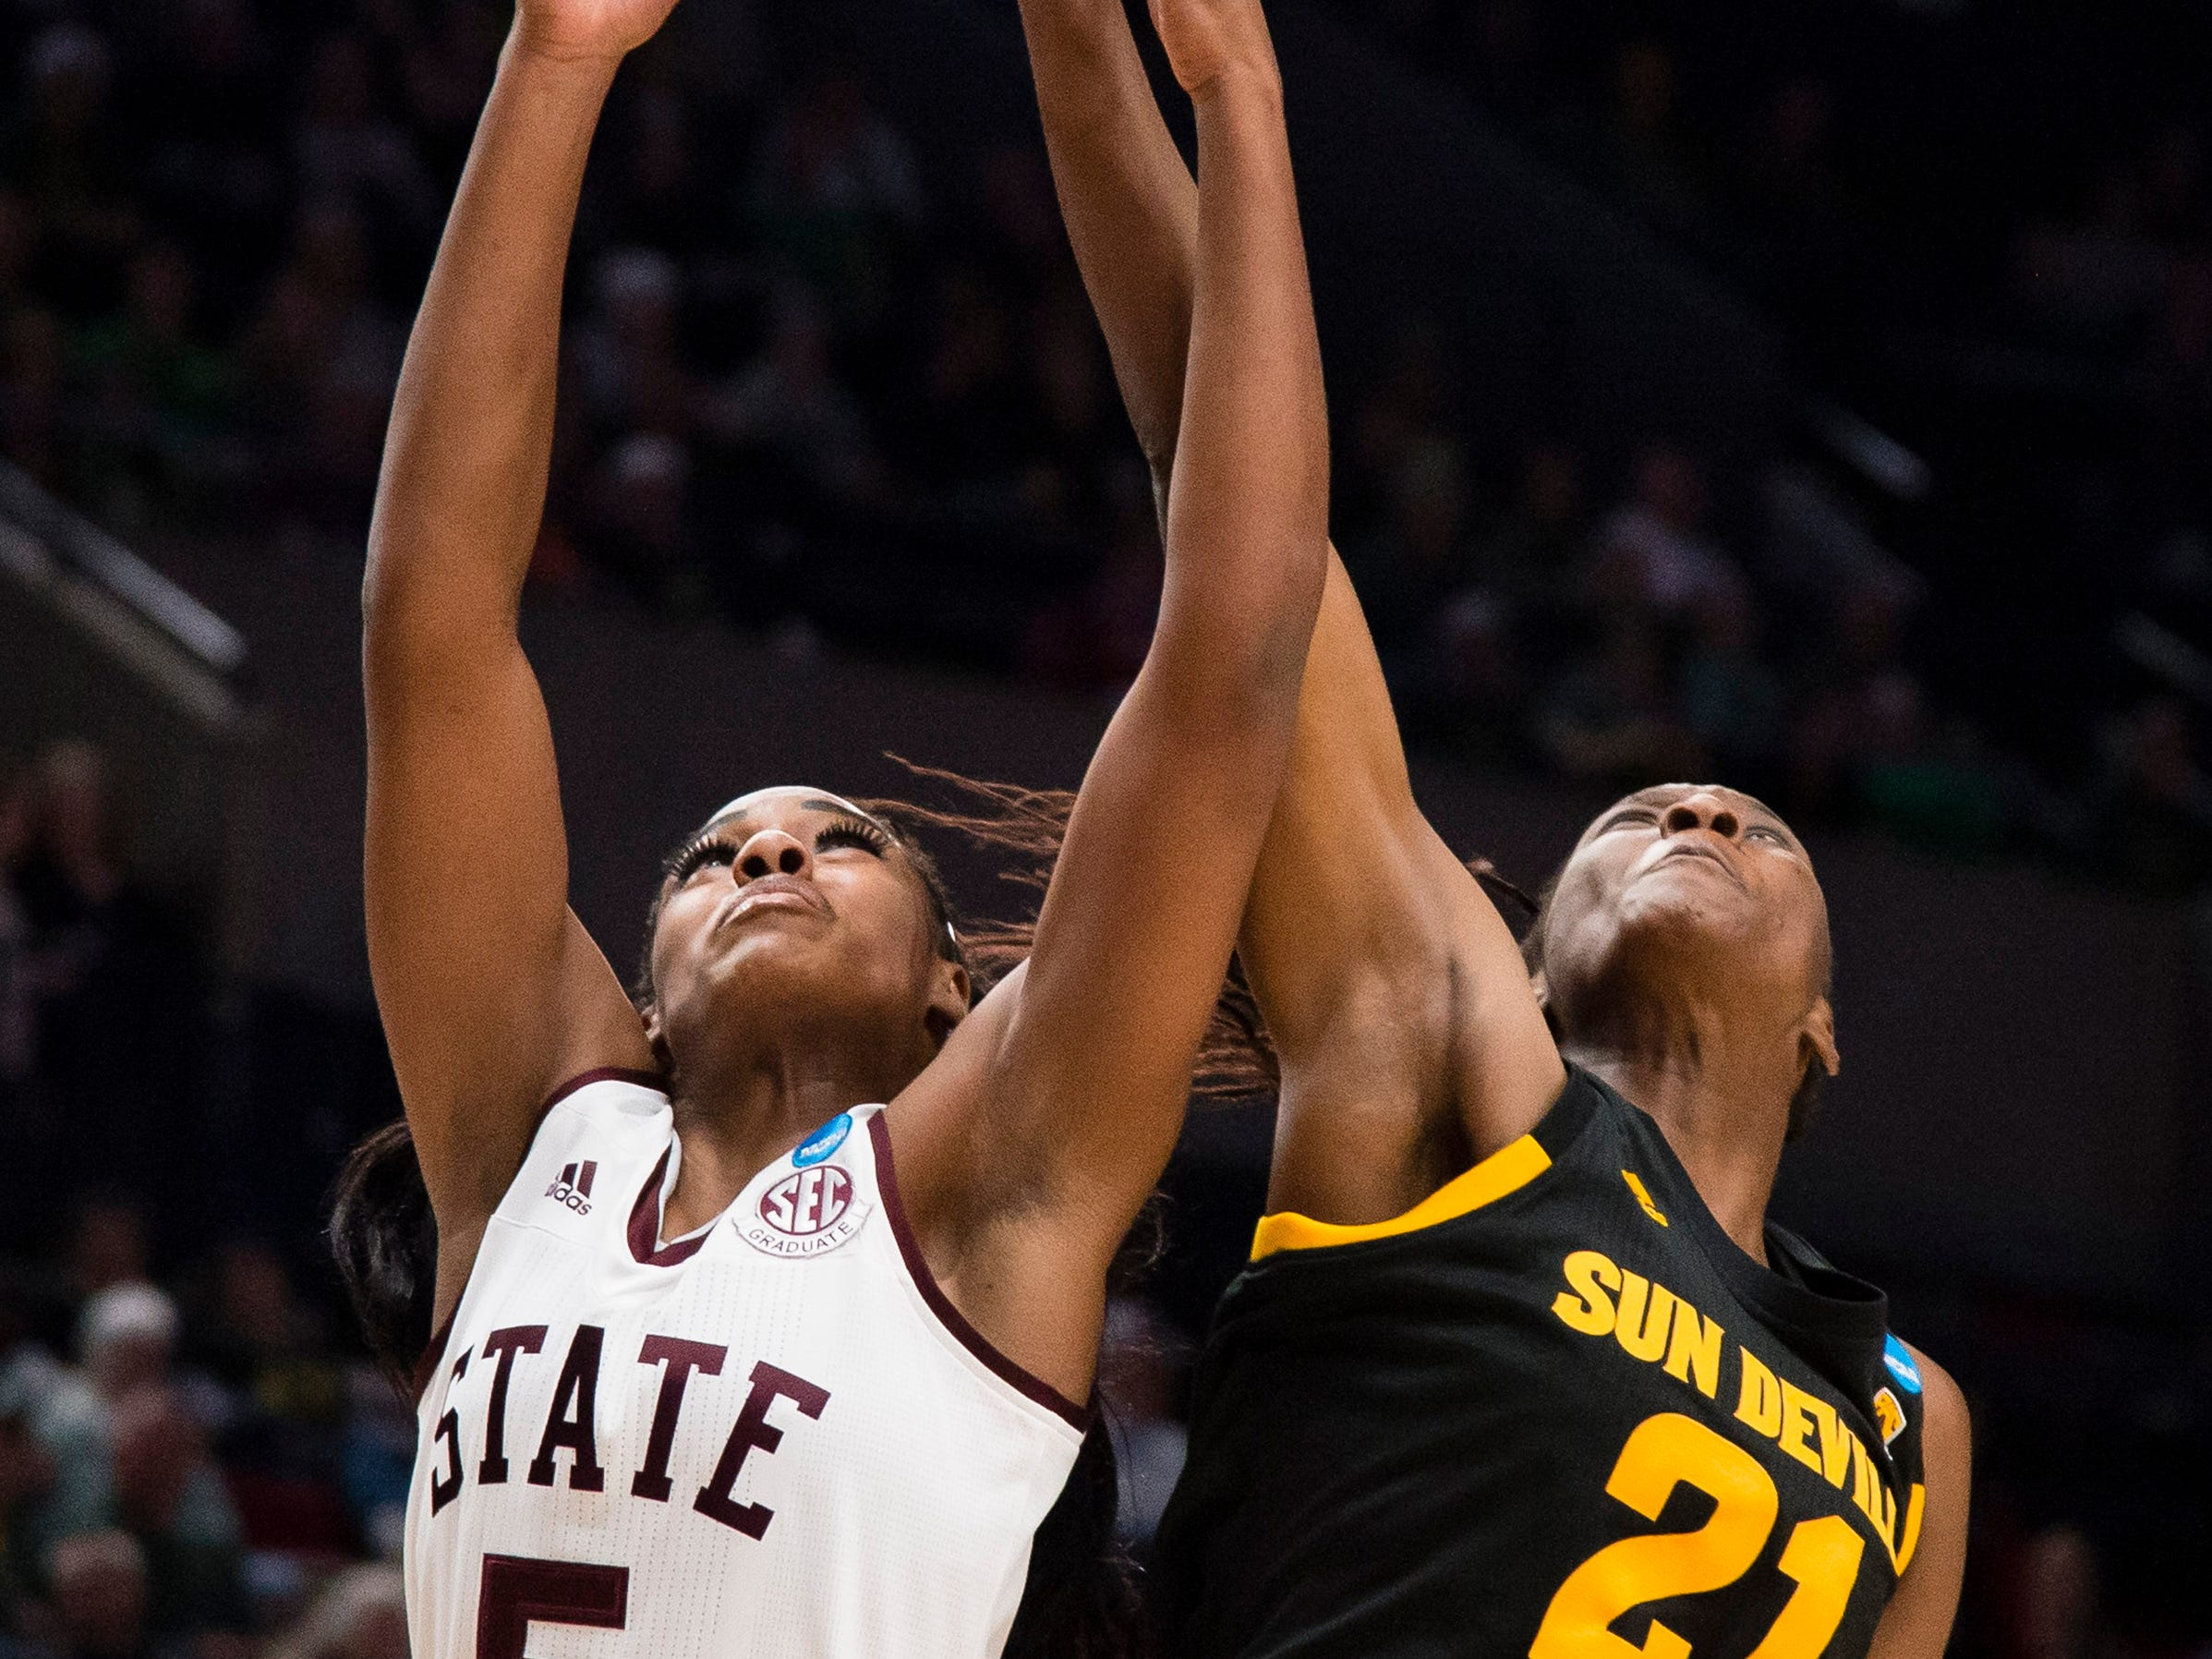 Mar 29, 2019; Portland, OR, USA; Mississippi State Bulldogs forward Anriel Howard (5) and Arizona State Sun Devils forward Sophia Elenga (21) battle for a rebound during the first half in the semifinals of the Portland regional in the women's 2019 NCAA Tournament at Moda Center.